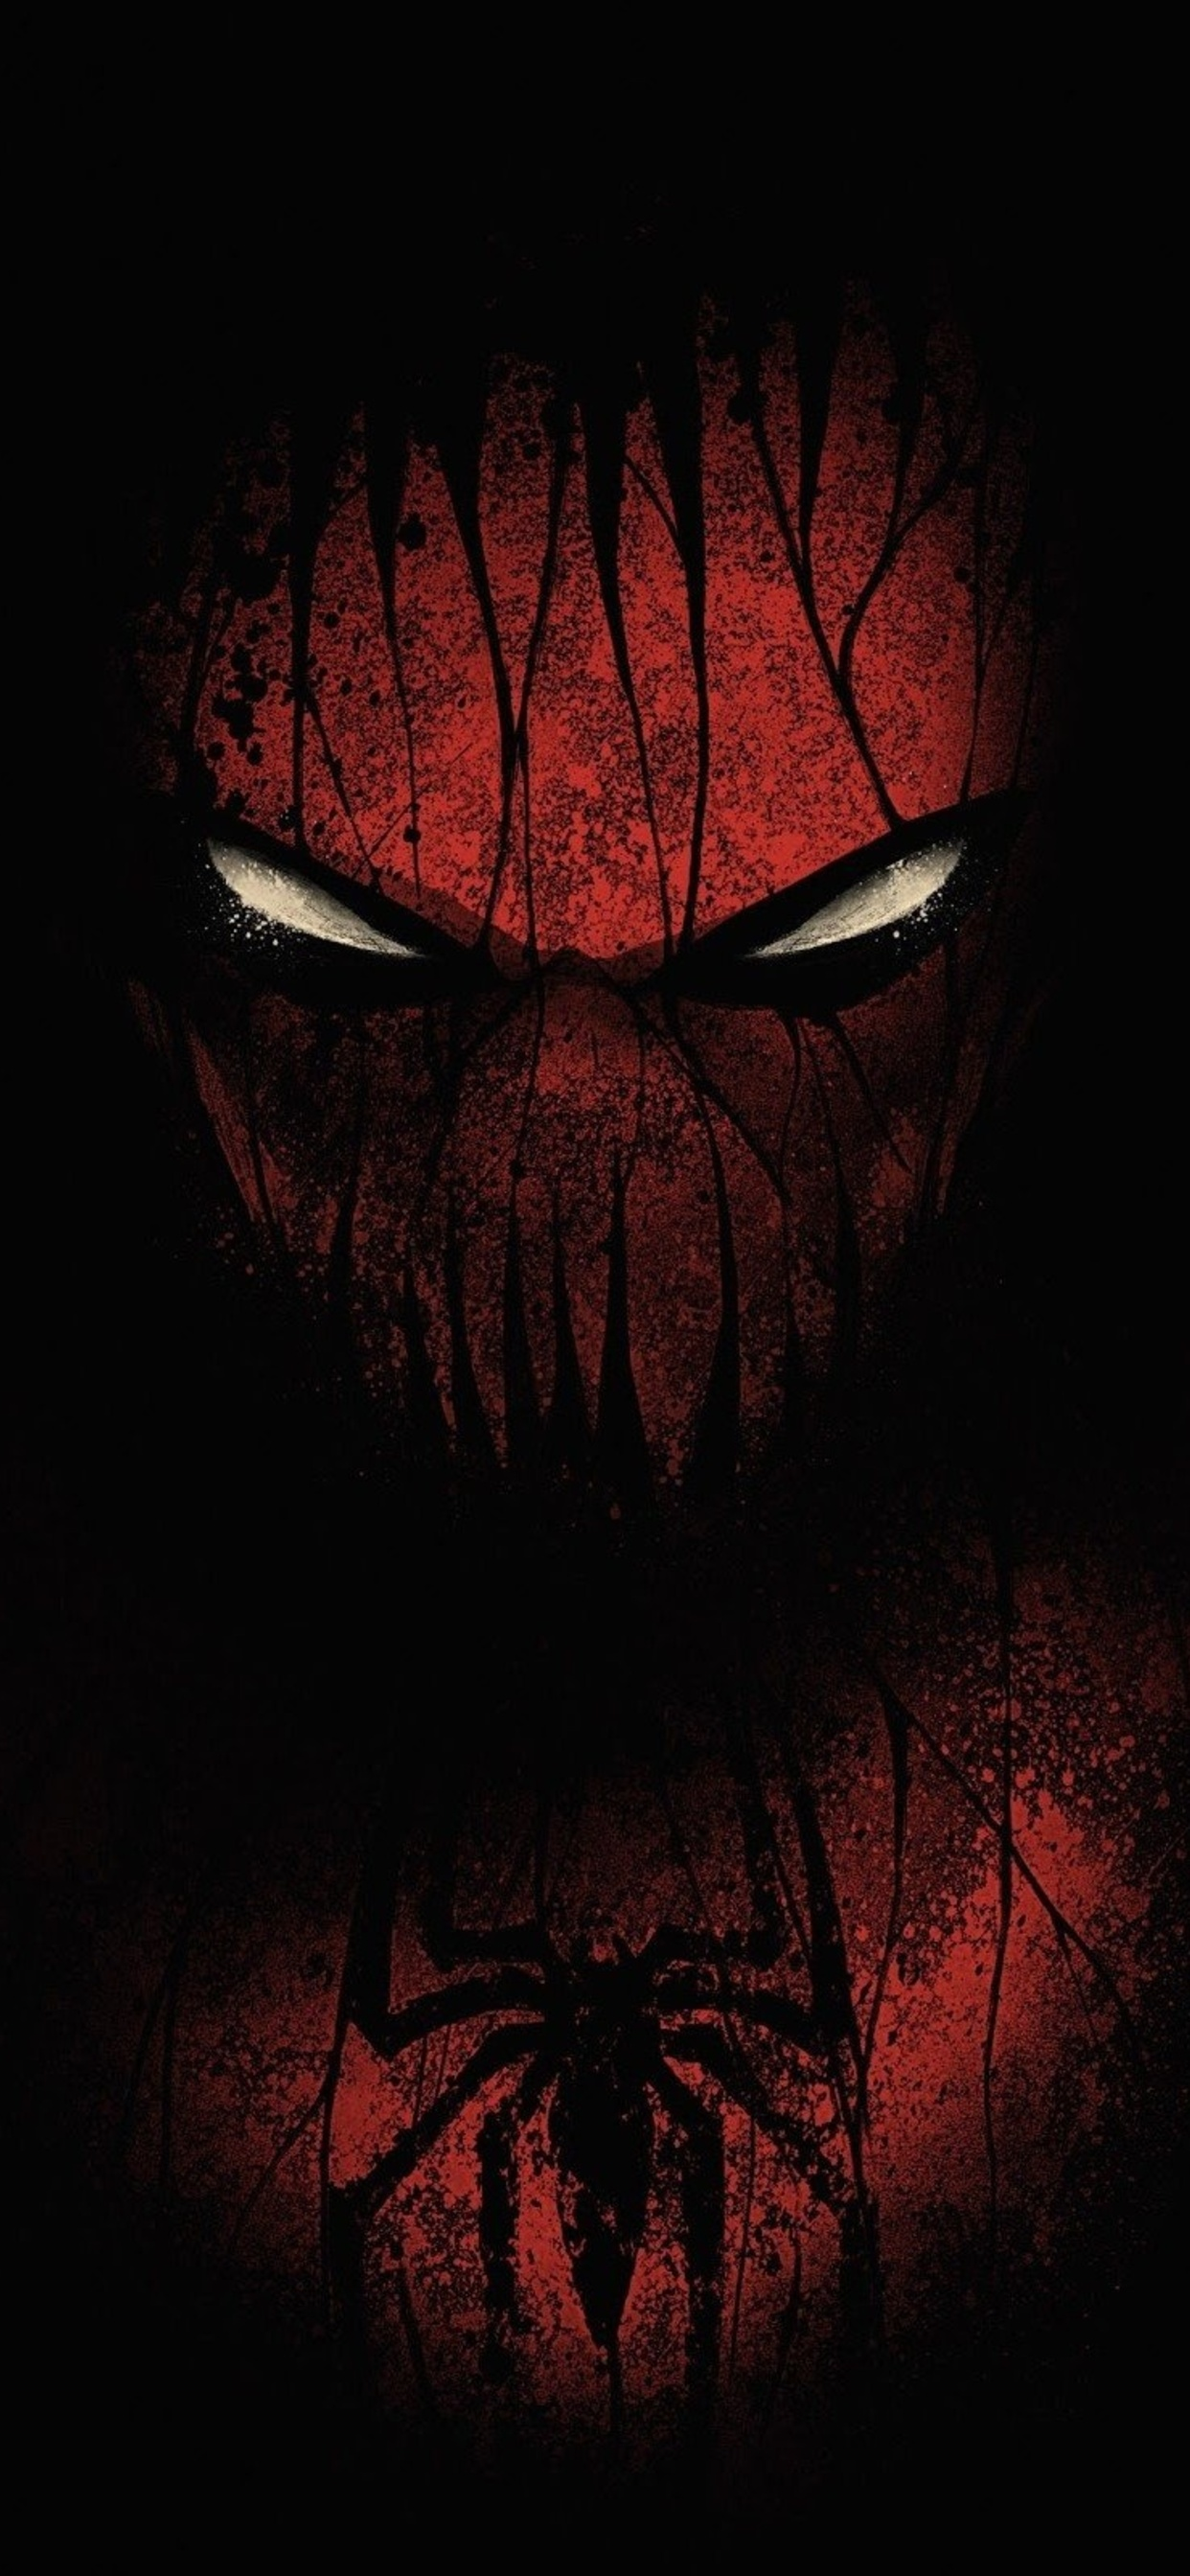 1242x2688 Red Black Spiderman Iphone Xs Max Hd 4k Wallpapers Images Backgrounds Photos And Pictures